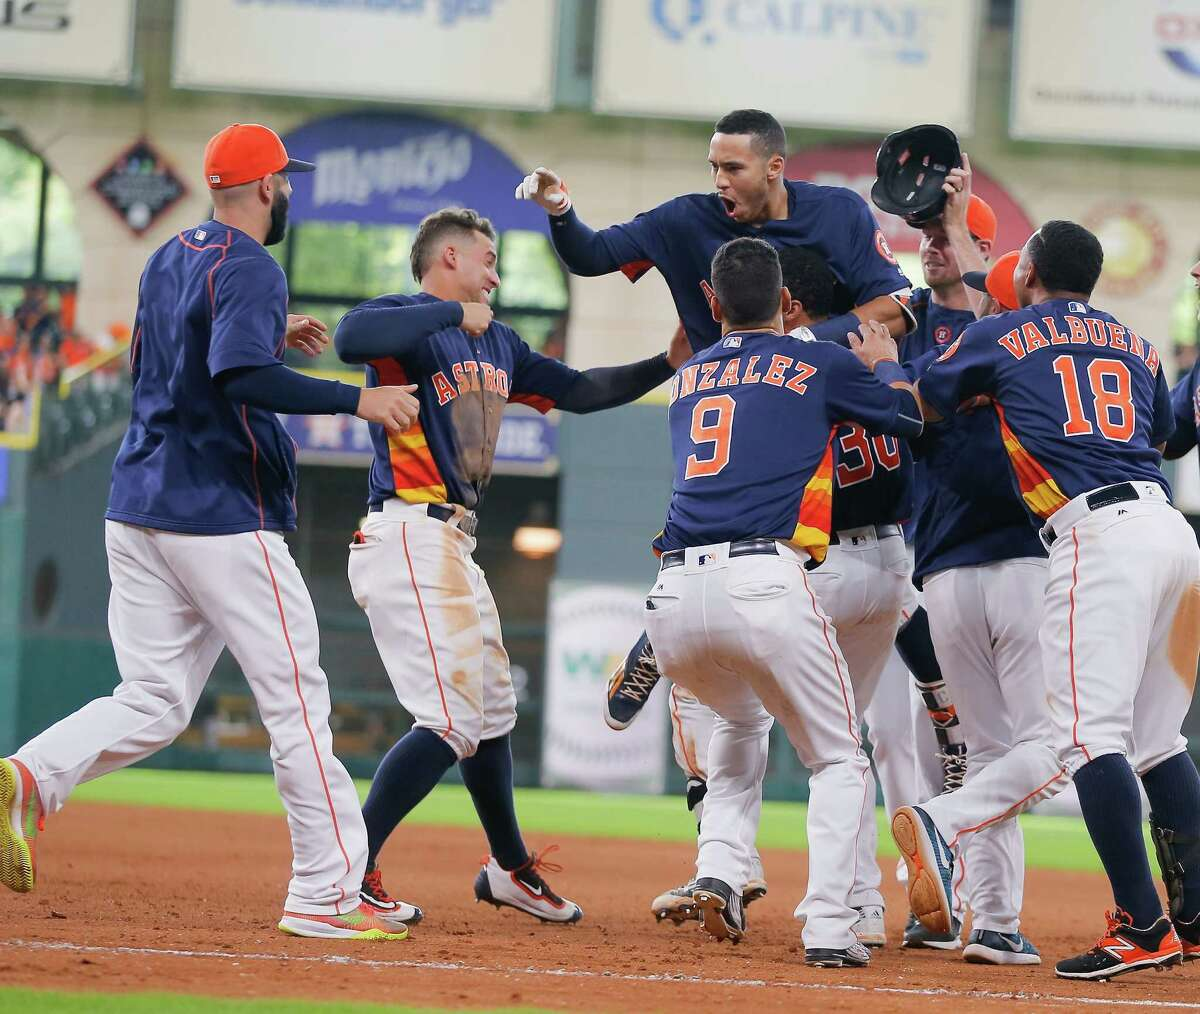 HOUSTON, TX - JULY 10: Carlos Correa #1 of the Houston Astros (C) is congratulated by his teammates after beating out an infield hit in the ninth inning allowing the winning run to beat the Oakland Athletics at Minute Maid Park on July 10, 2016 in Houston, Texas.